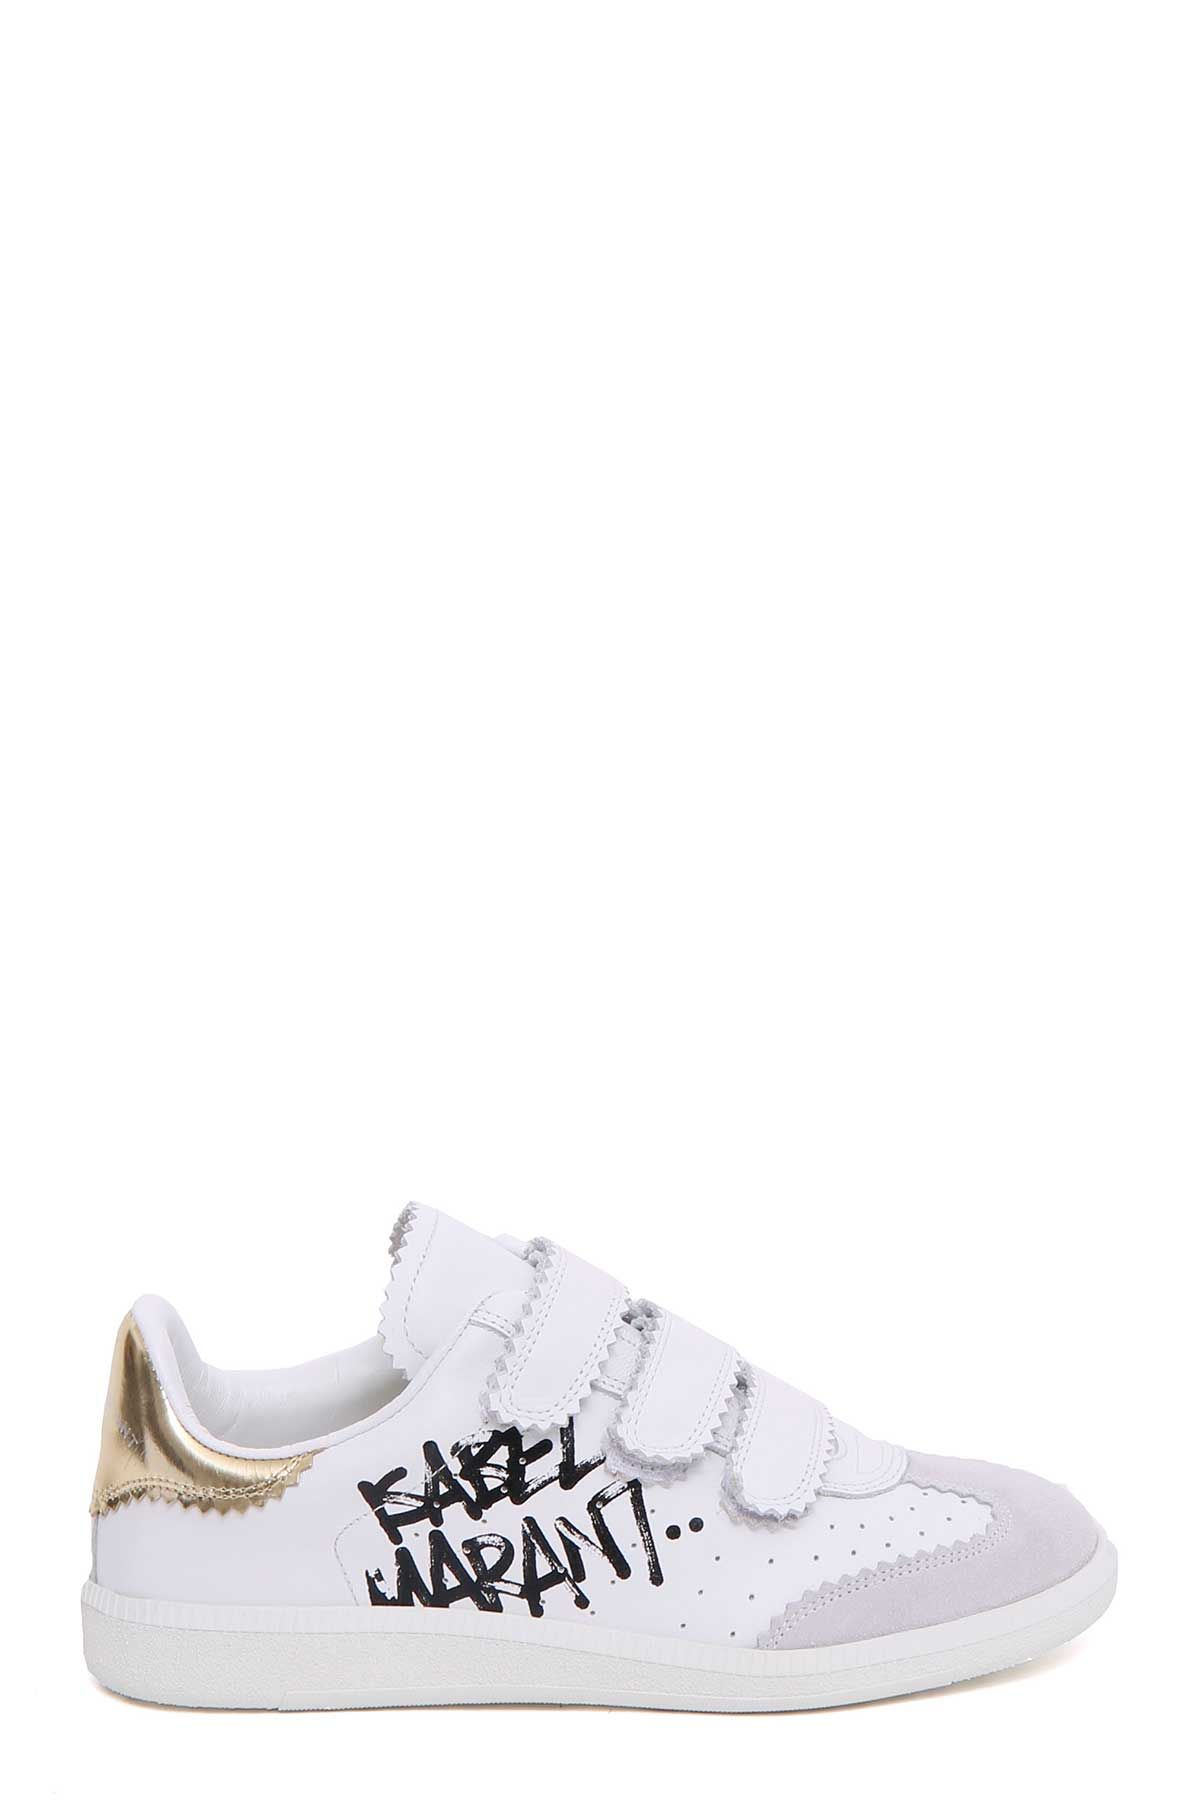 isabel marant isabel marant leather and suede 39 beth 39 sneakers white women 39 s sneakers italist. Black Bedroom Furniture Sets. Home Design Ideas